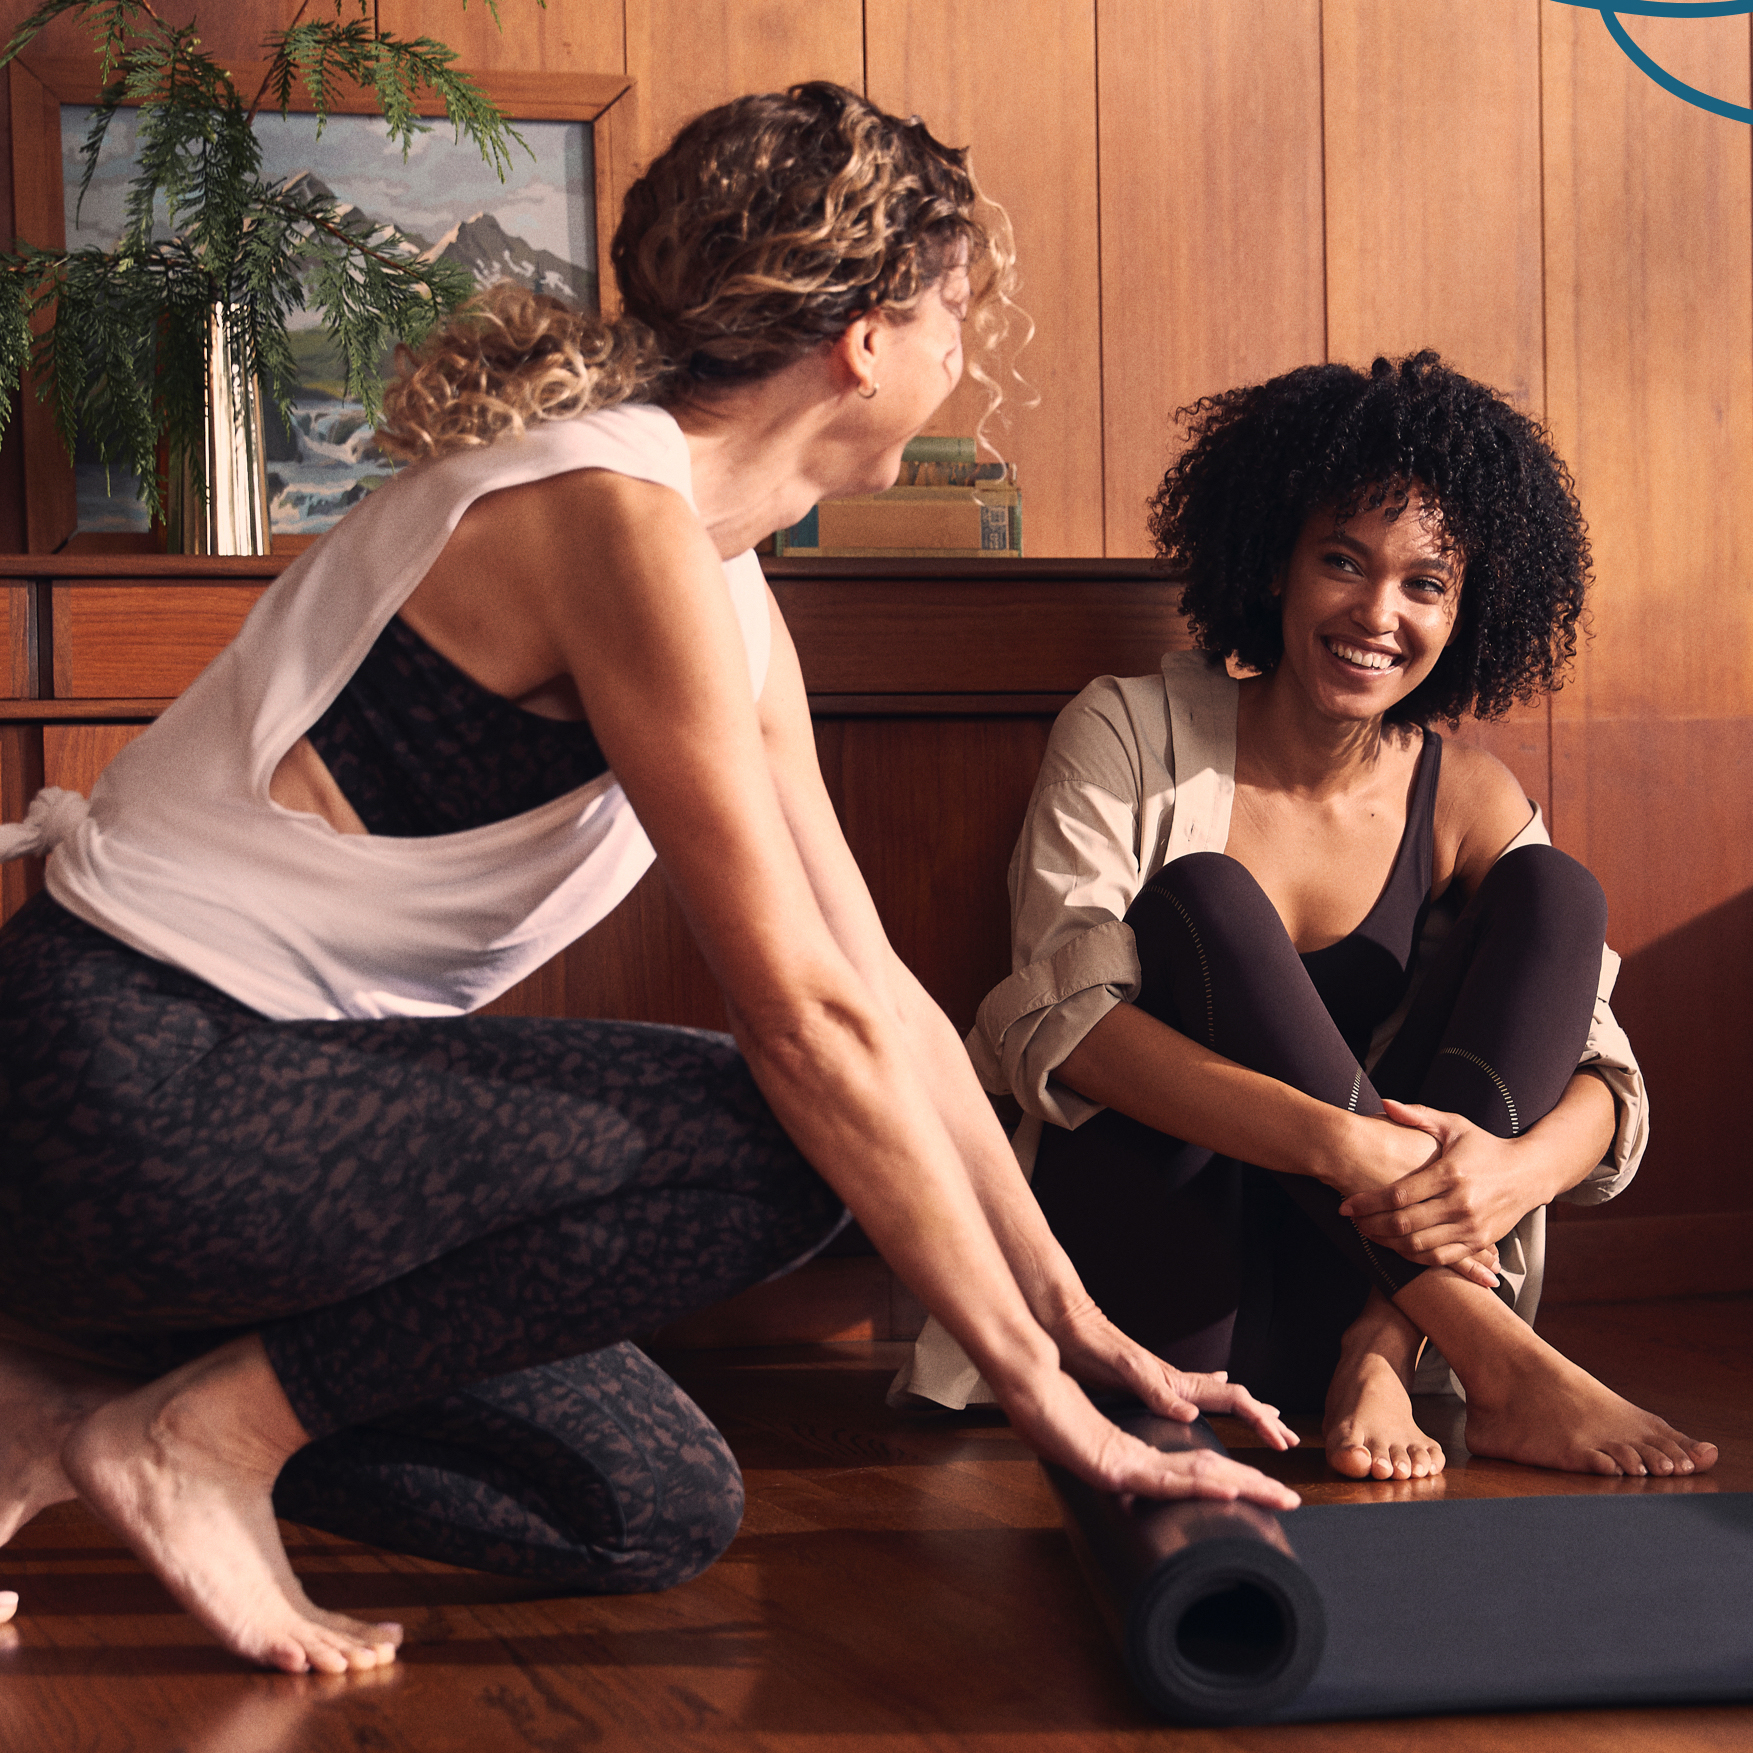 Two woman in lululemon activewear talking while stretching